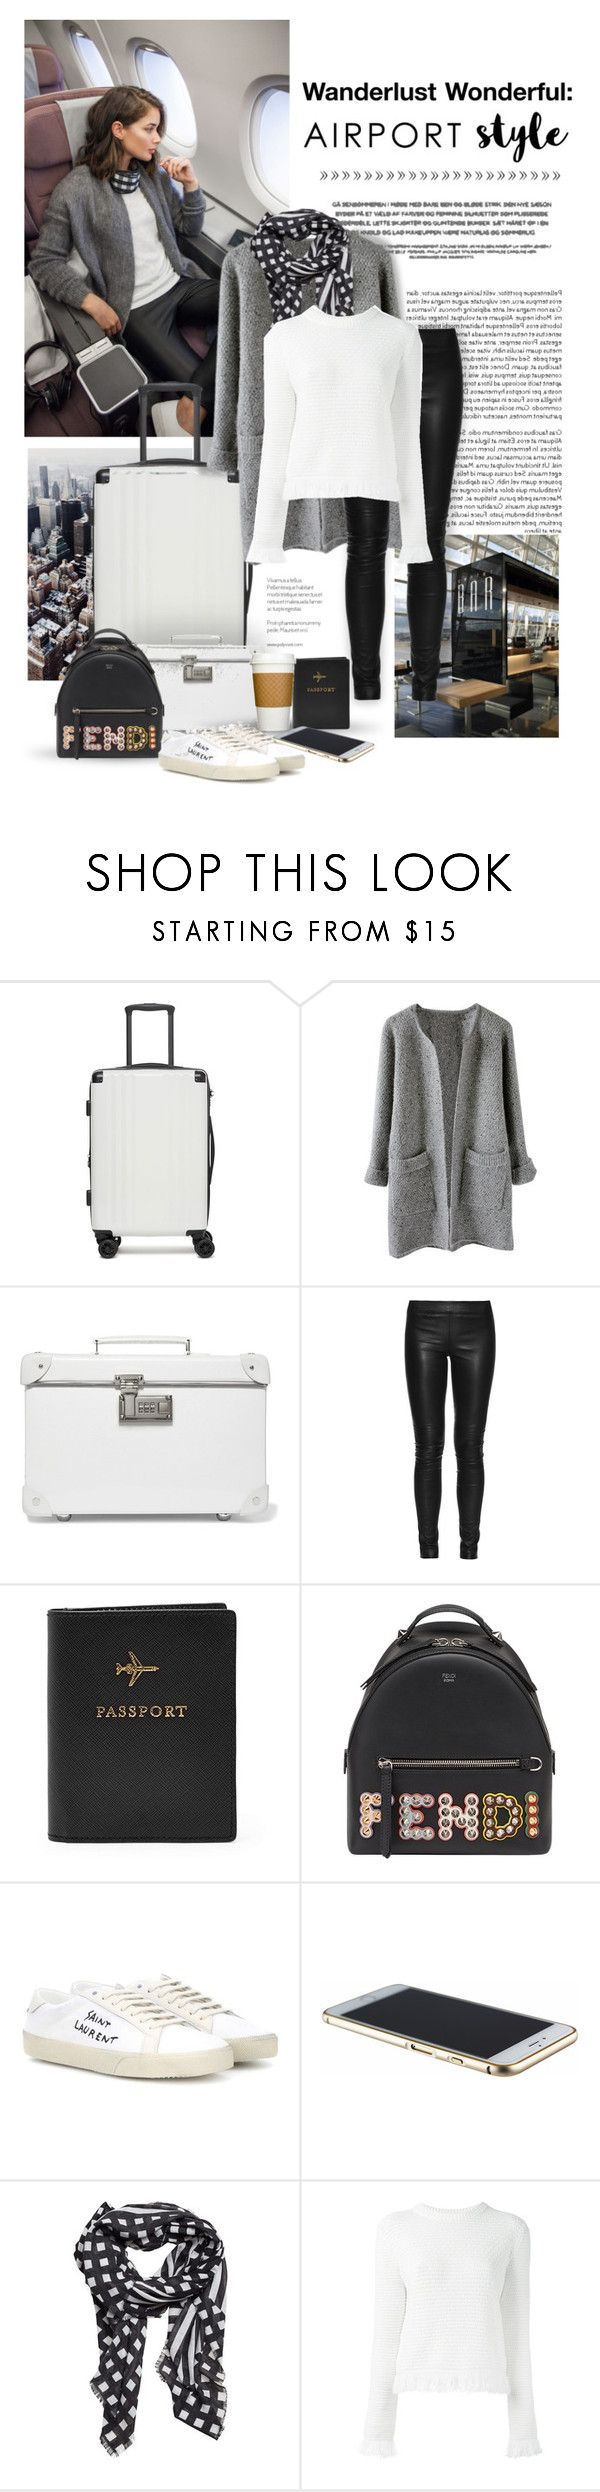 """Wanderlust Wonderful: Airport Style"" by m-aric ❤ liked on Polyvore featuring CalPak, Globe-Trotter, The Row, FOSSIL, Fendi, Yves Saint Laurent, MANGO, Proenza Schouler, fendi and proenzaschouler"